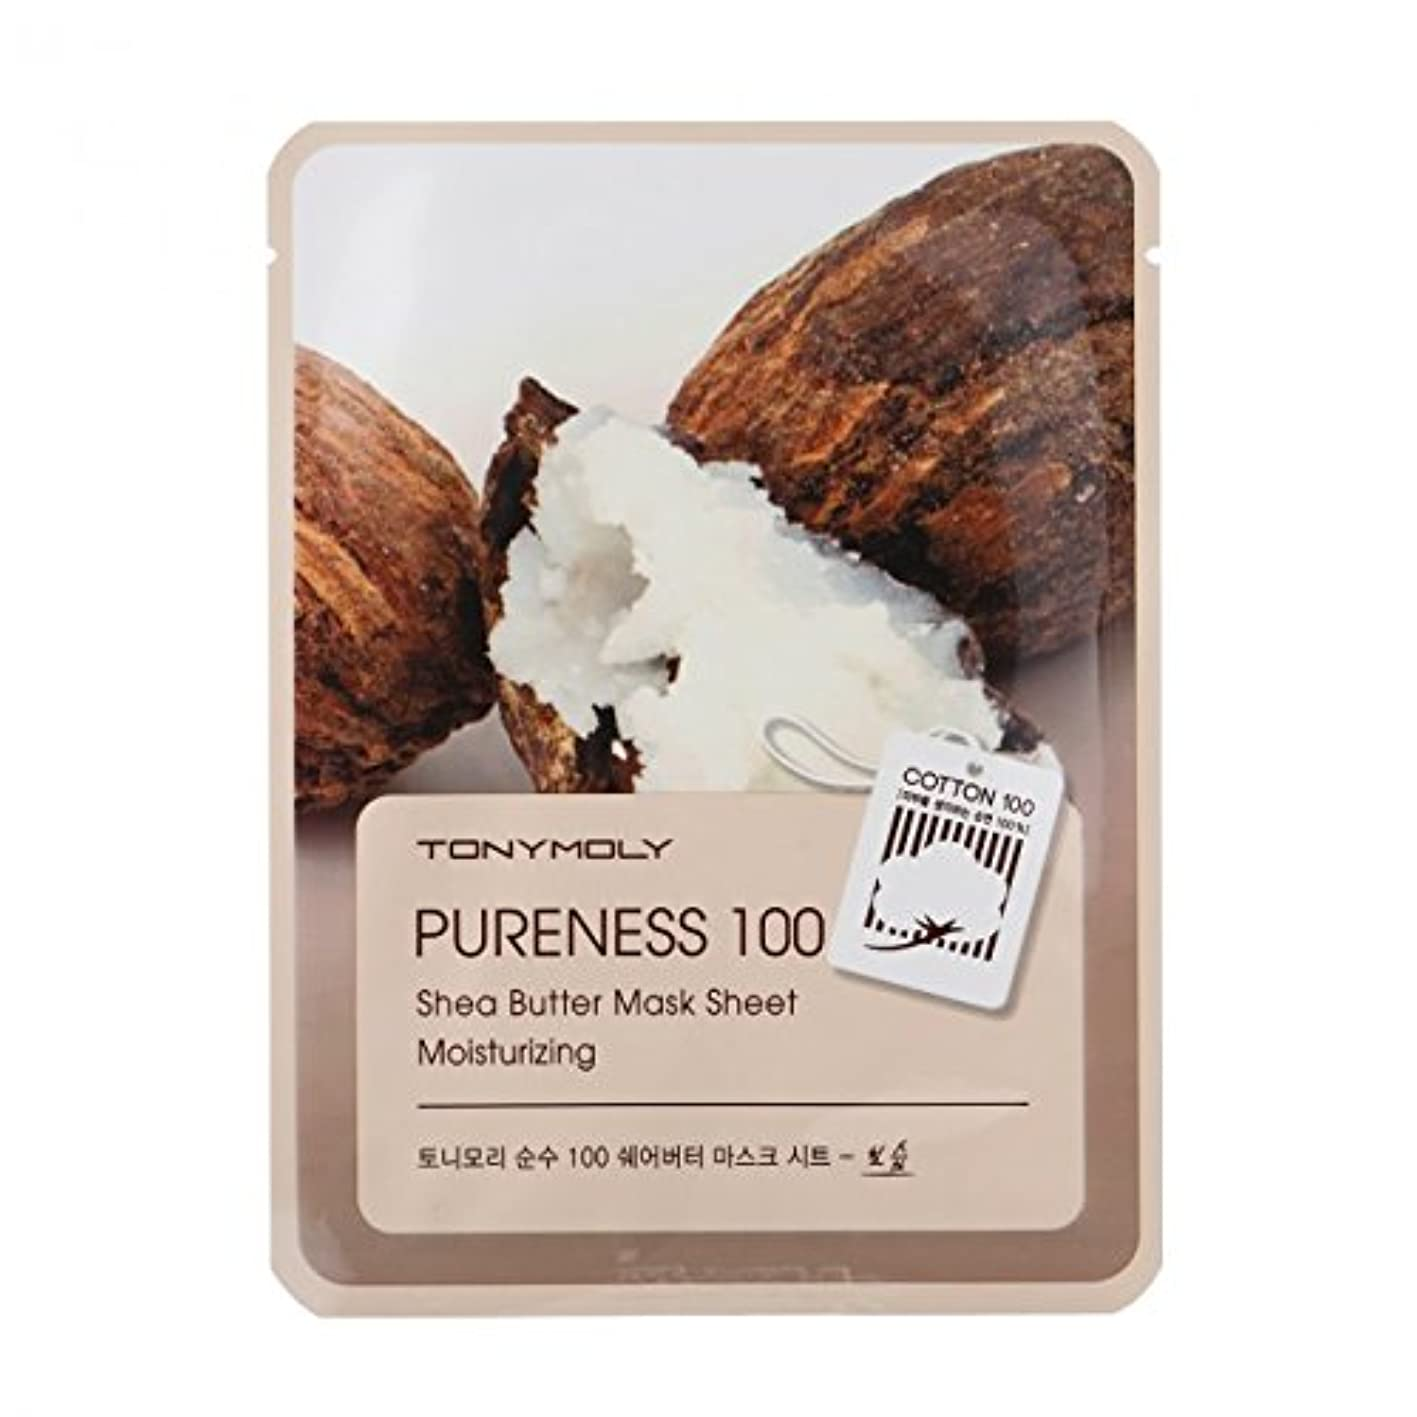 生物学歴史脳(6 Pack) TONYMOLY Pureness 100 Shea Butter Mask Sheet Moisturizing (並行輸入品)